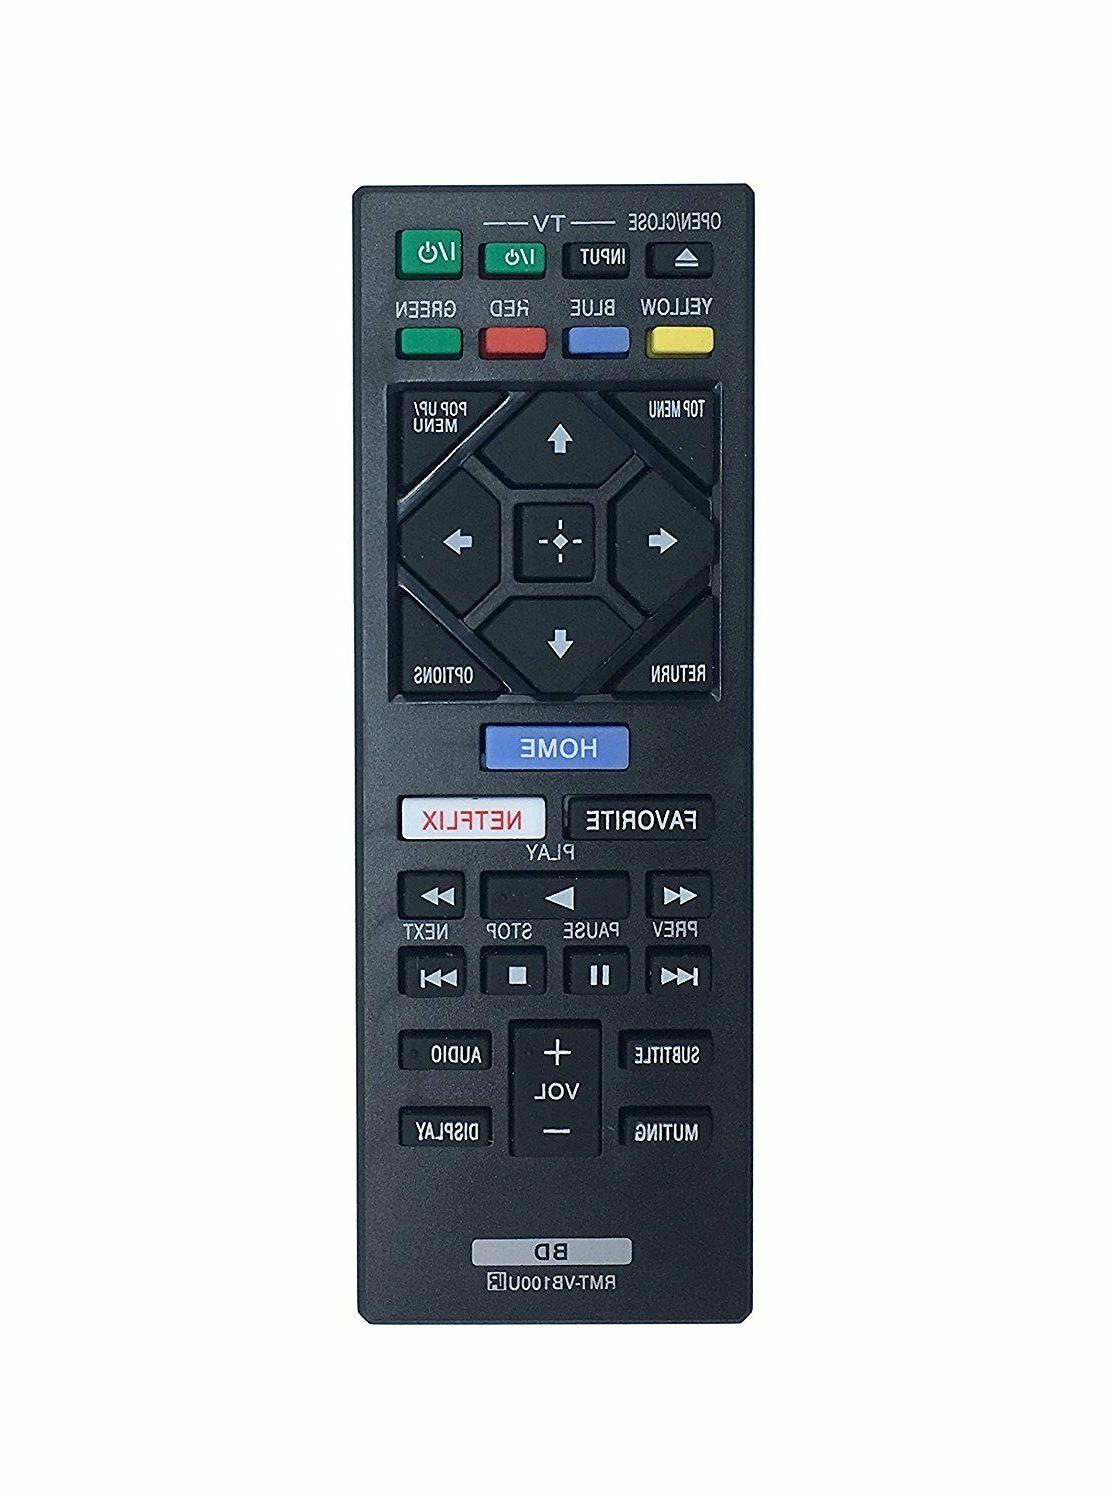 New Blu-ray DVD Player RMT-VB100U Remote Control for Sony BD